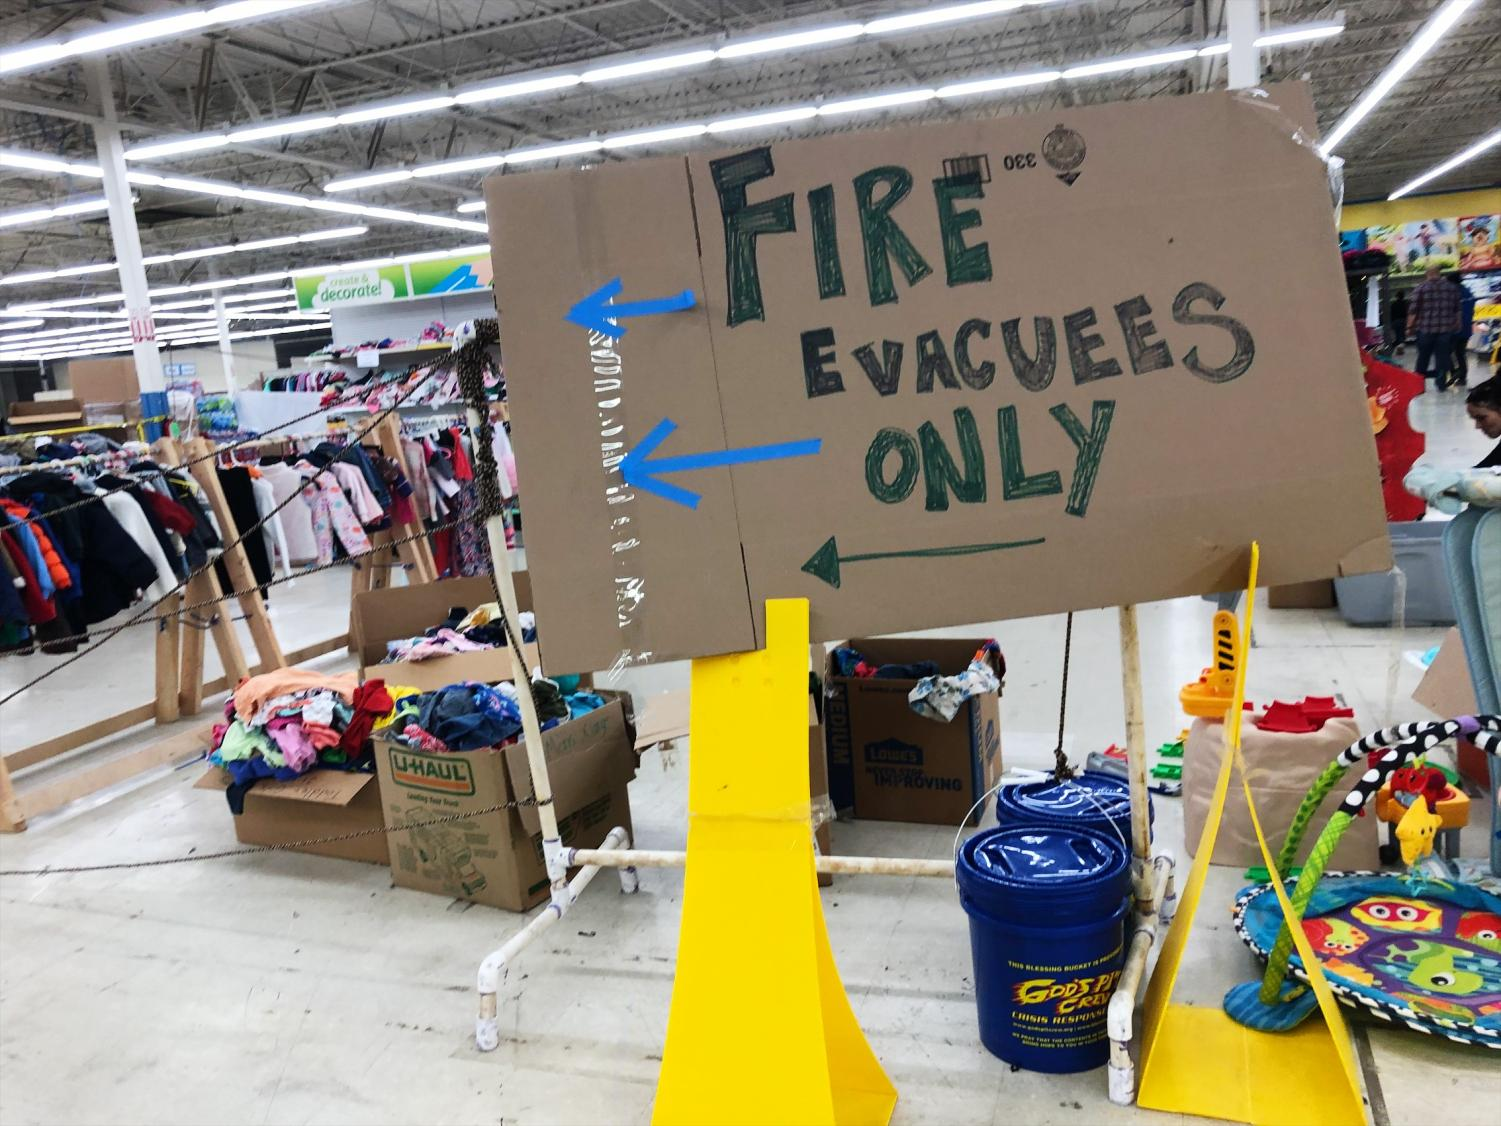 The fire evacuees had the option to go to a support group led by a preacher to help restore their faith after losing everything from the fire.